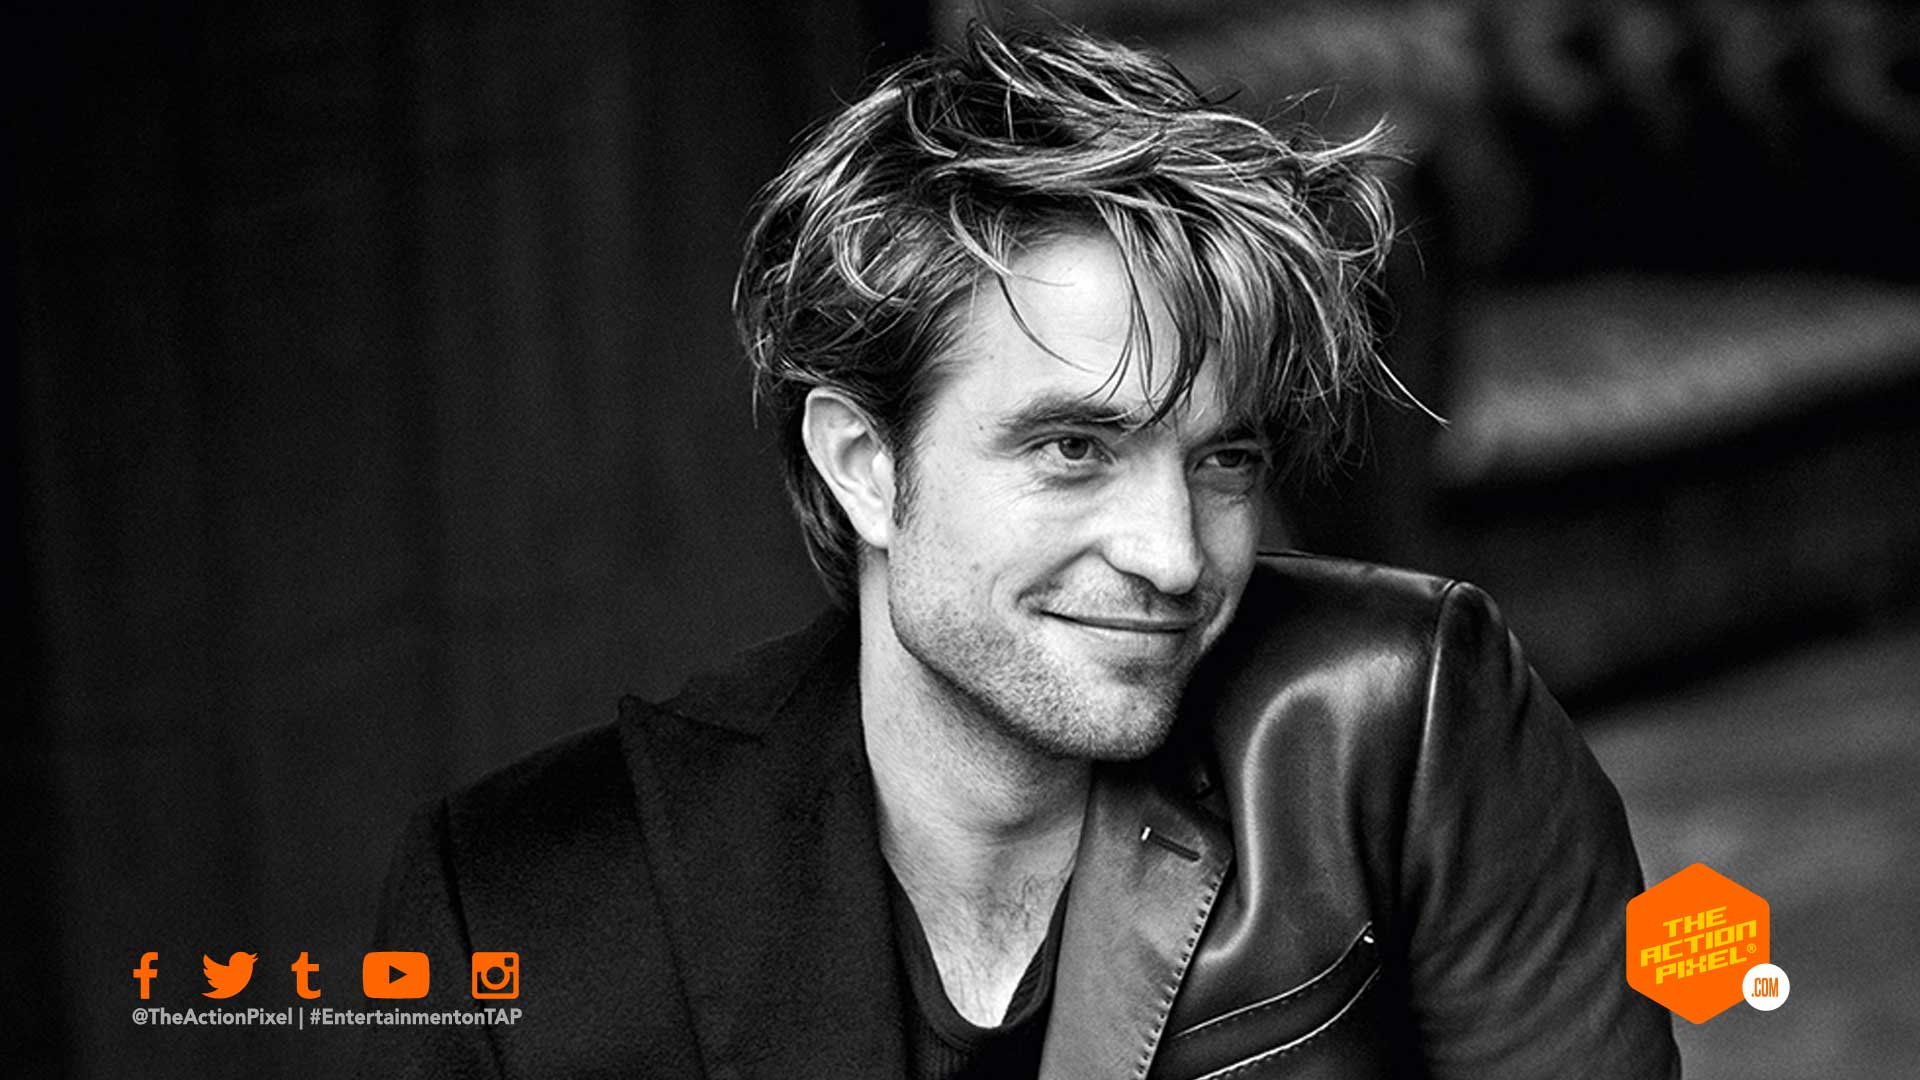 robert pattinson, matt reeves, batman, dc comics, the batman, wb pictures, batsuit, the action pixel, entertainment on tap, featured